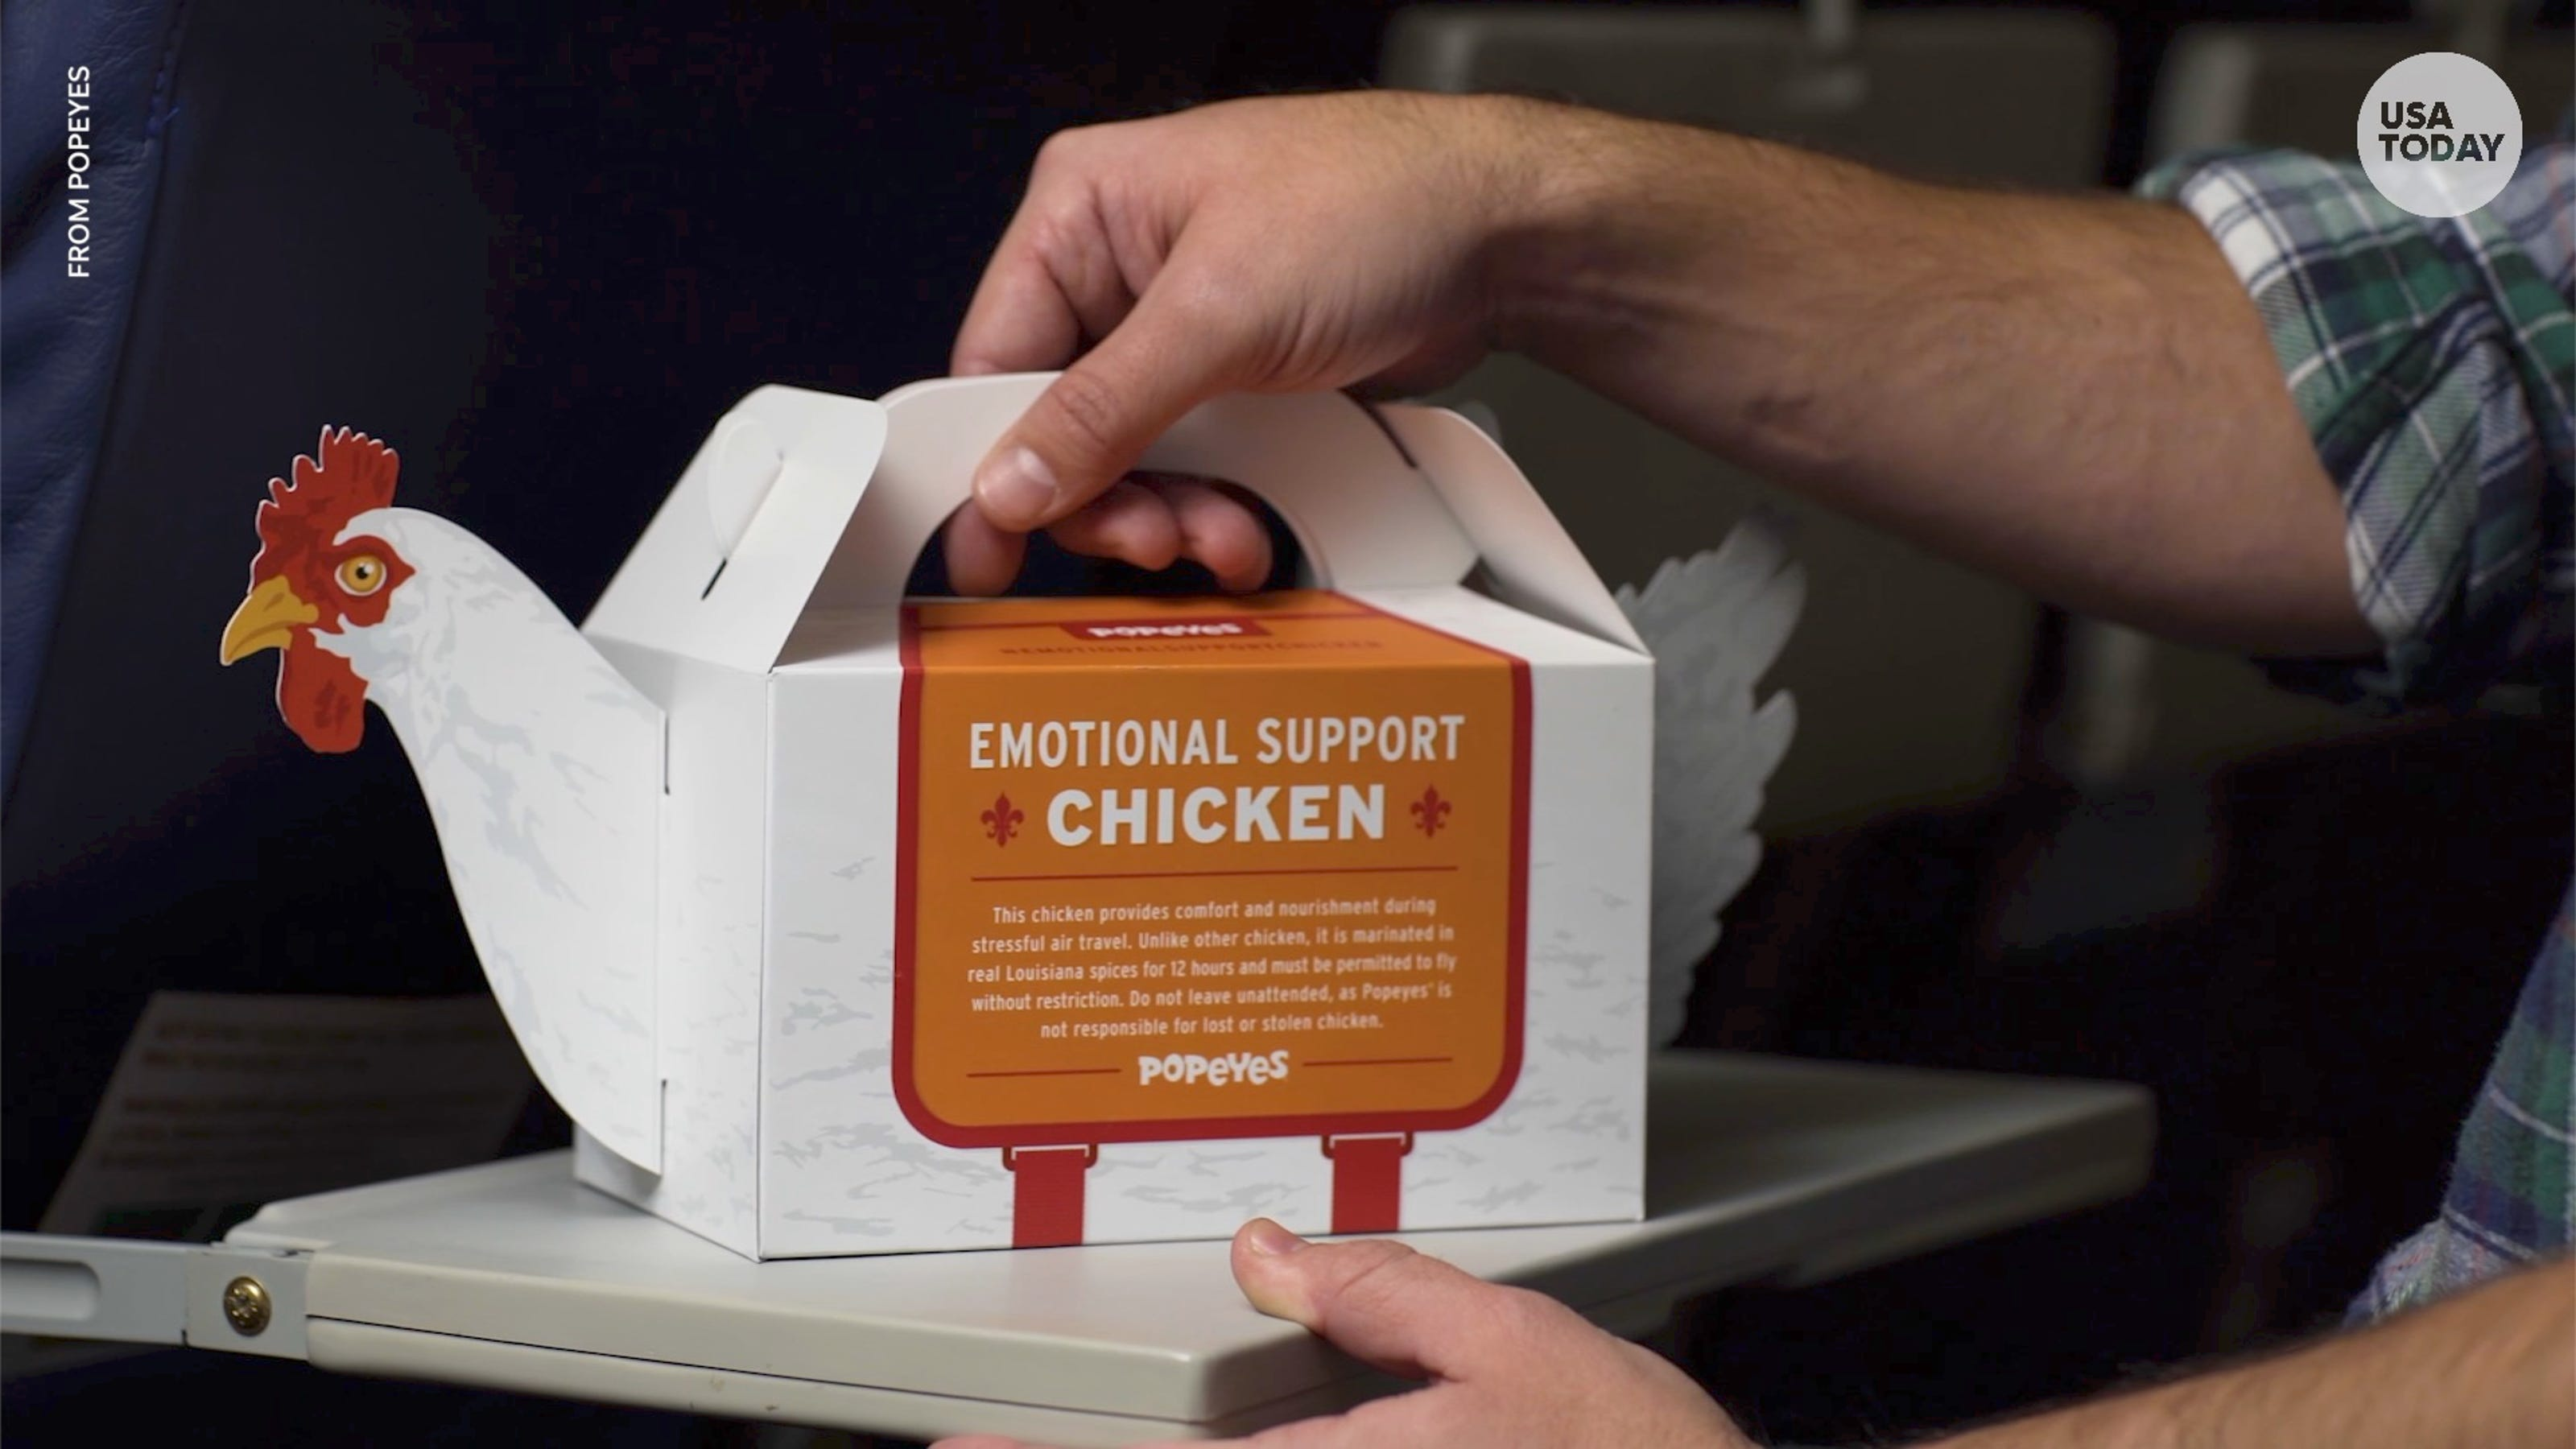 Popeyes offers 'Emotional Support Chicken' to comfort flyers